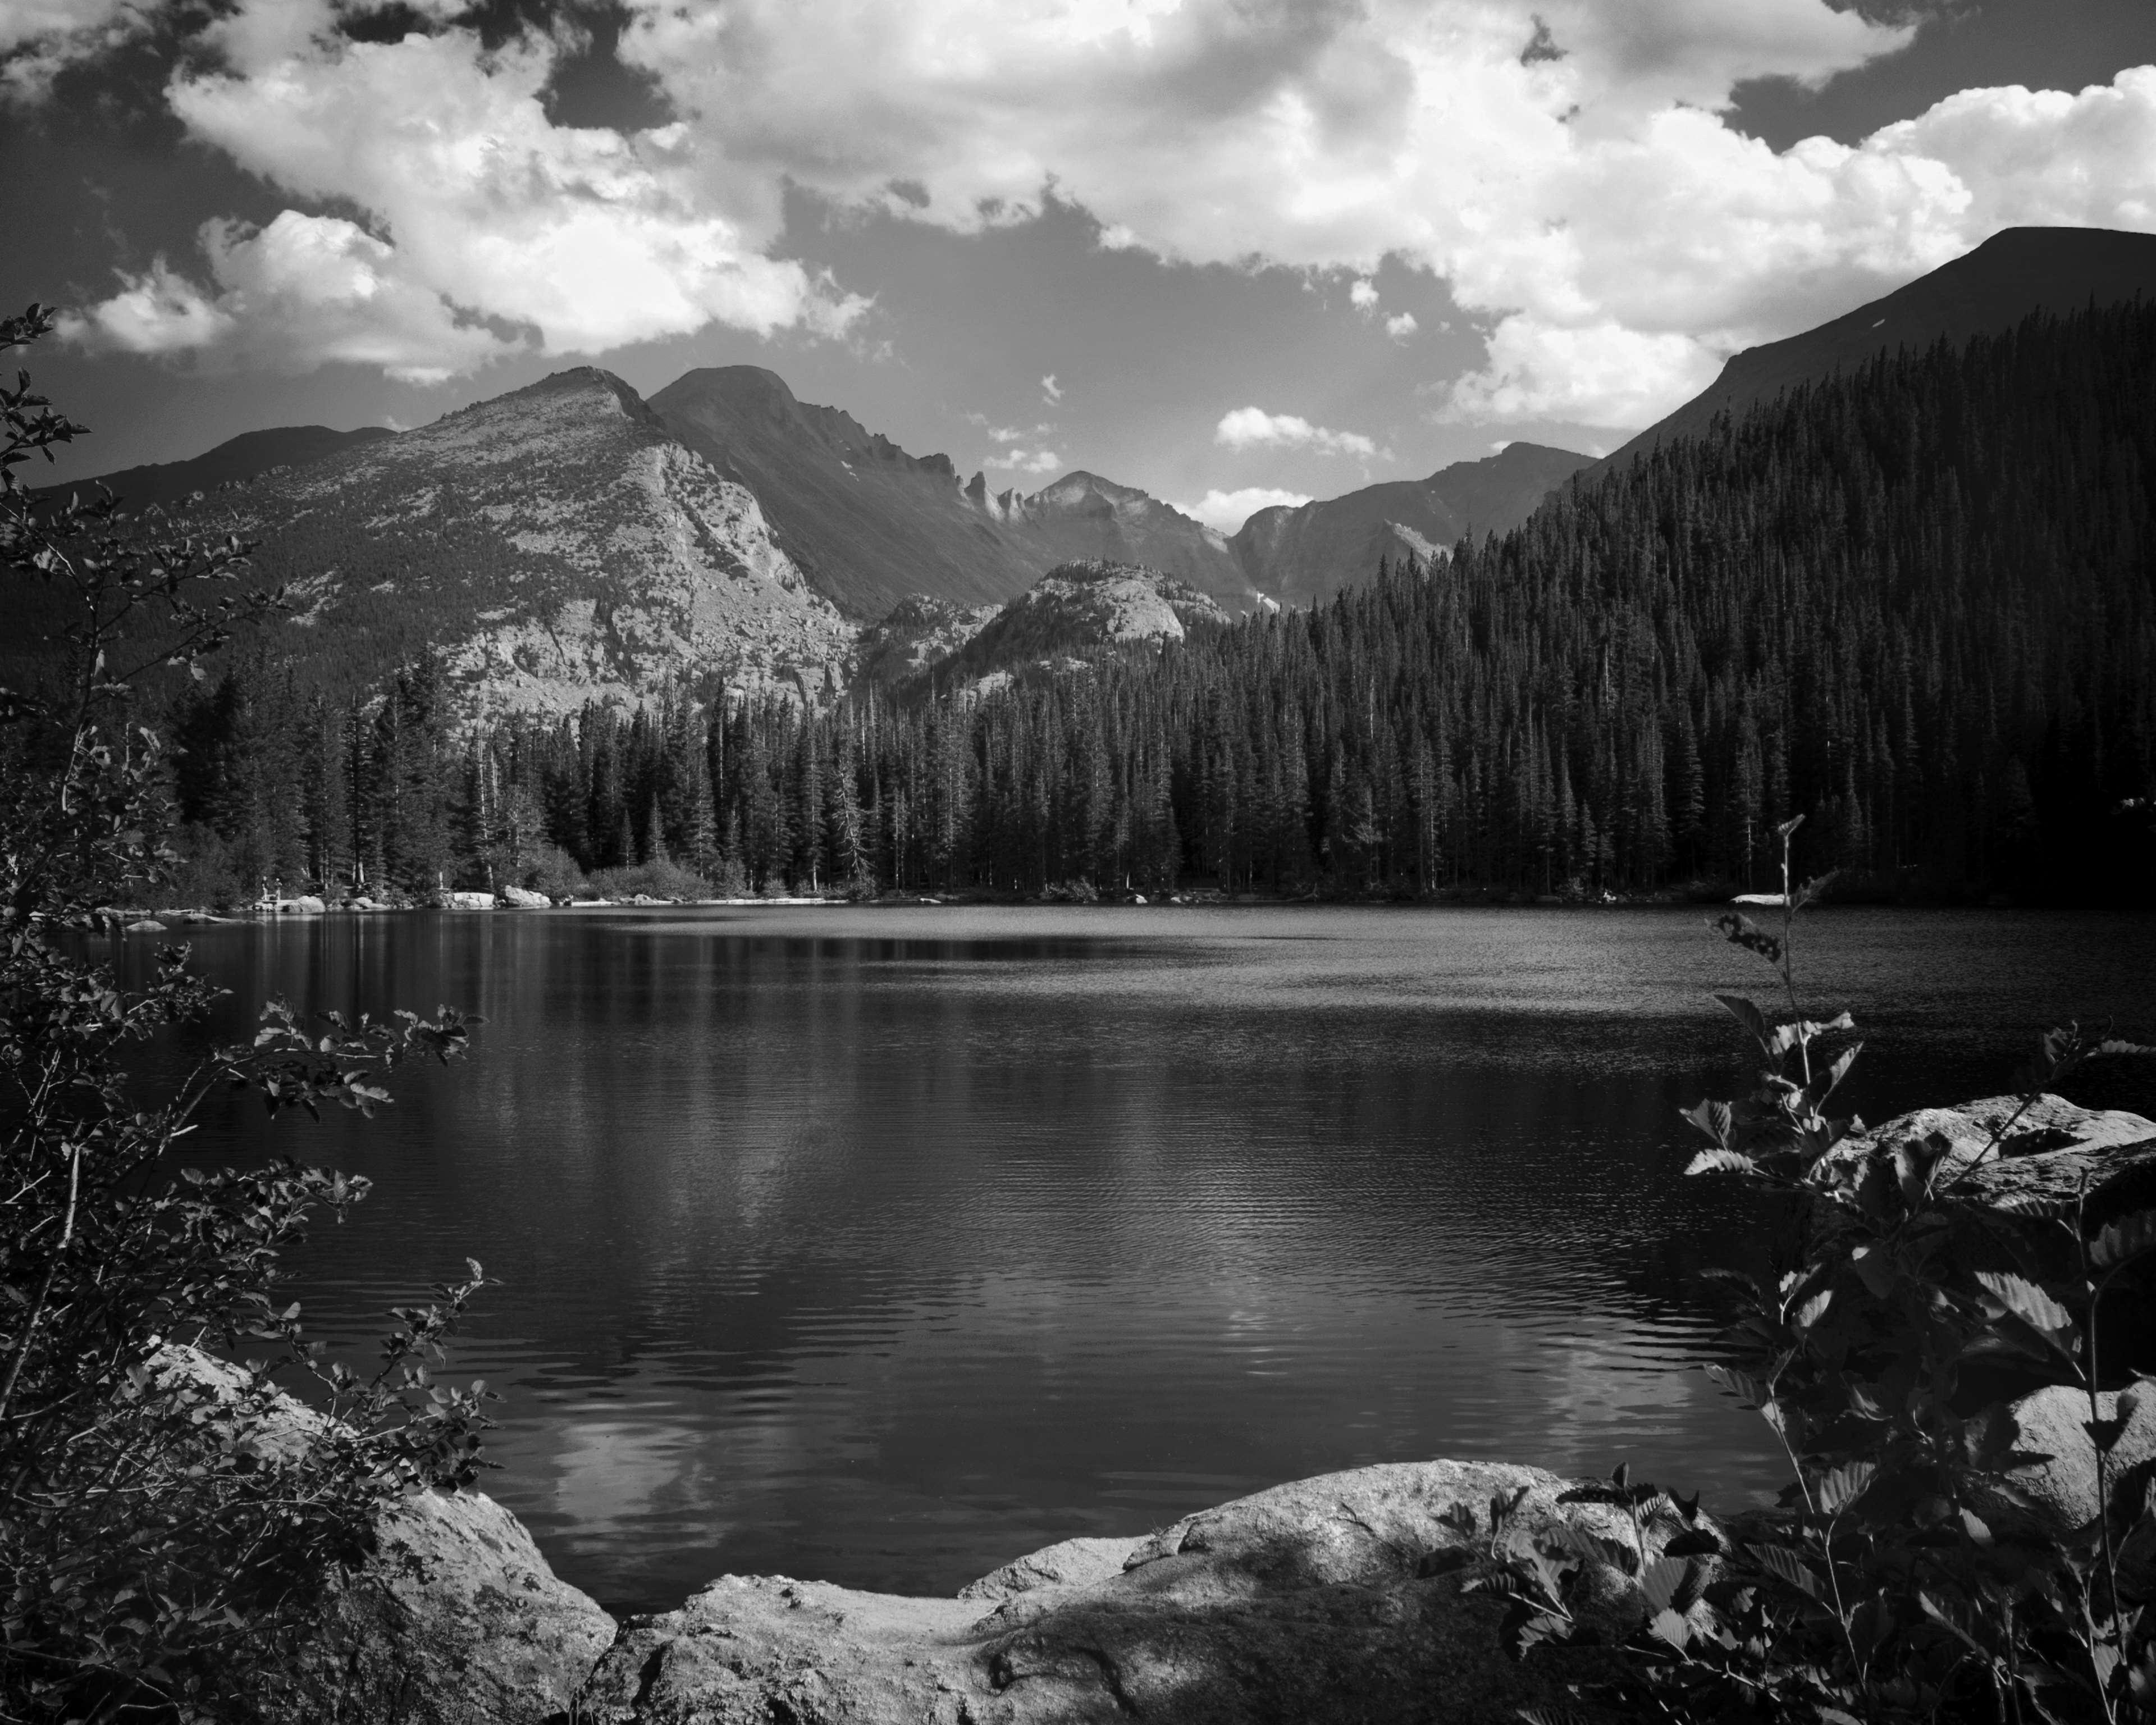 Black And White Black And White Clouds Forest Lake Landscape Monochrome Mountain Nature Outdoors Placid Rocks S Nature Photos Scenic Scenic Photos